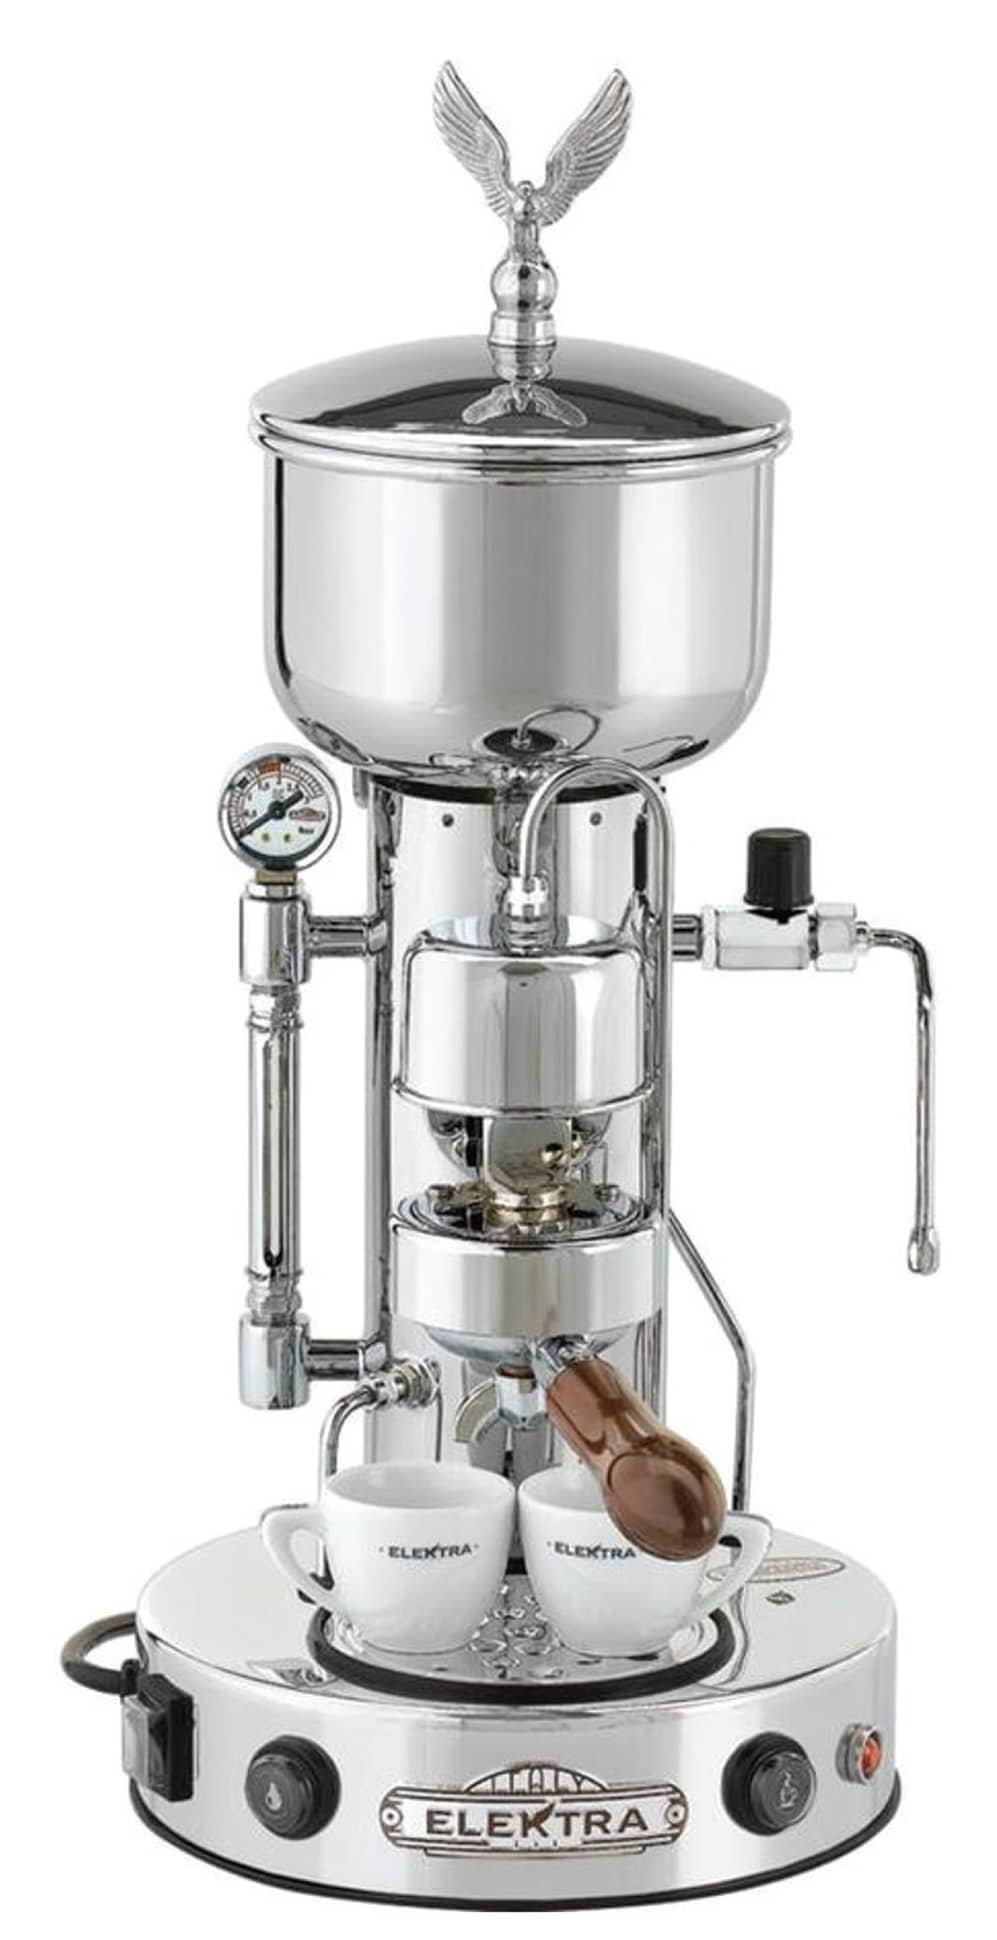 ELEKTRA MICRO CASA SEMI-AUTIMATICA. This semi-automatic espresso machine ensures top-notch performance every time you brew. Worldwide shipping available.